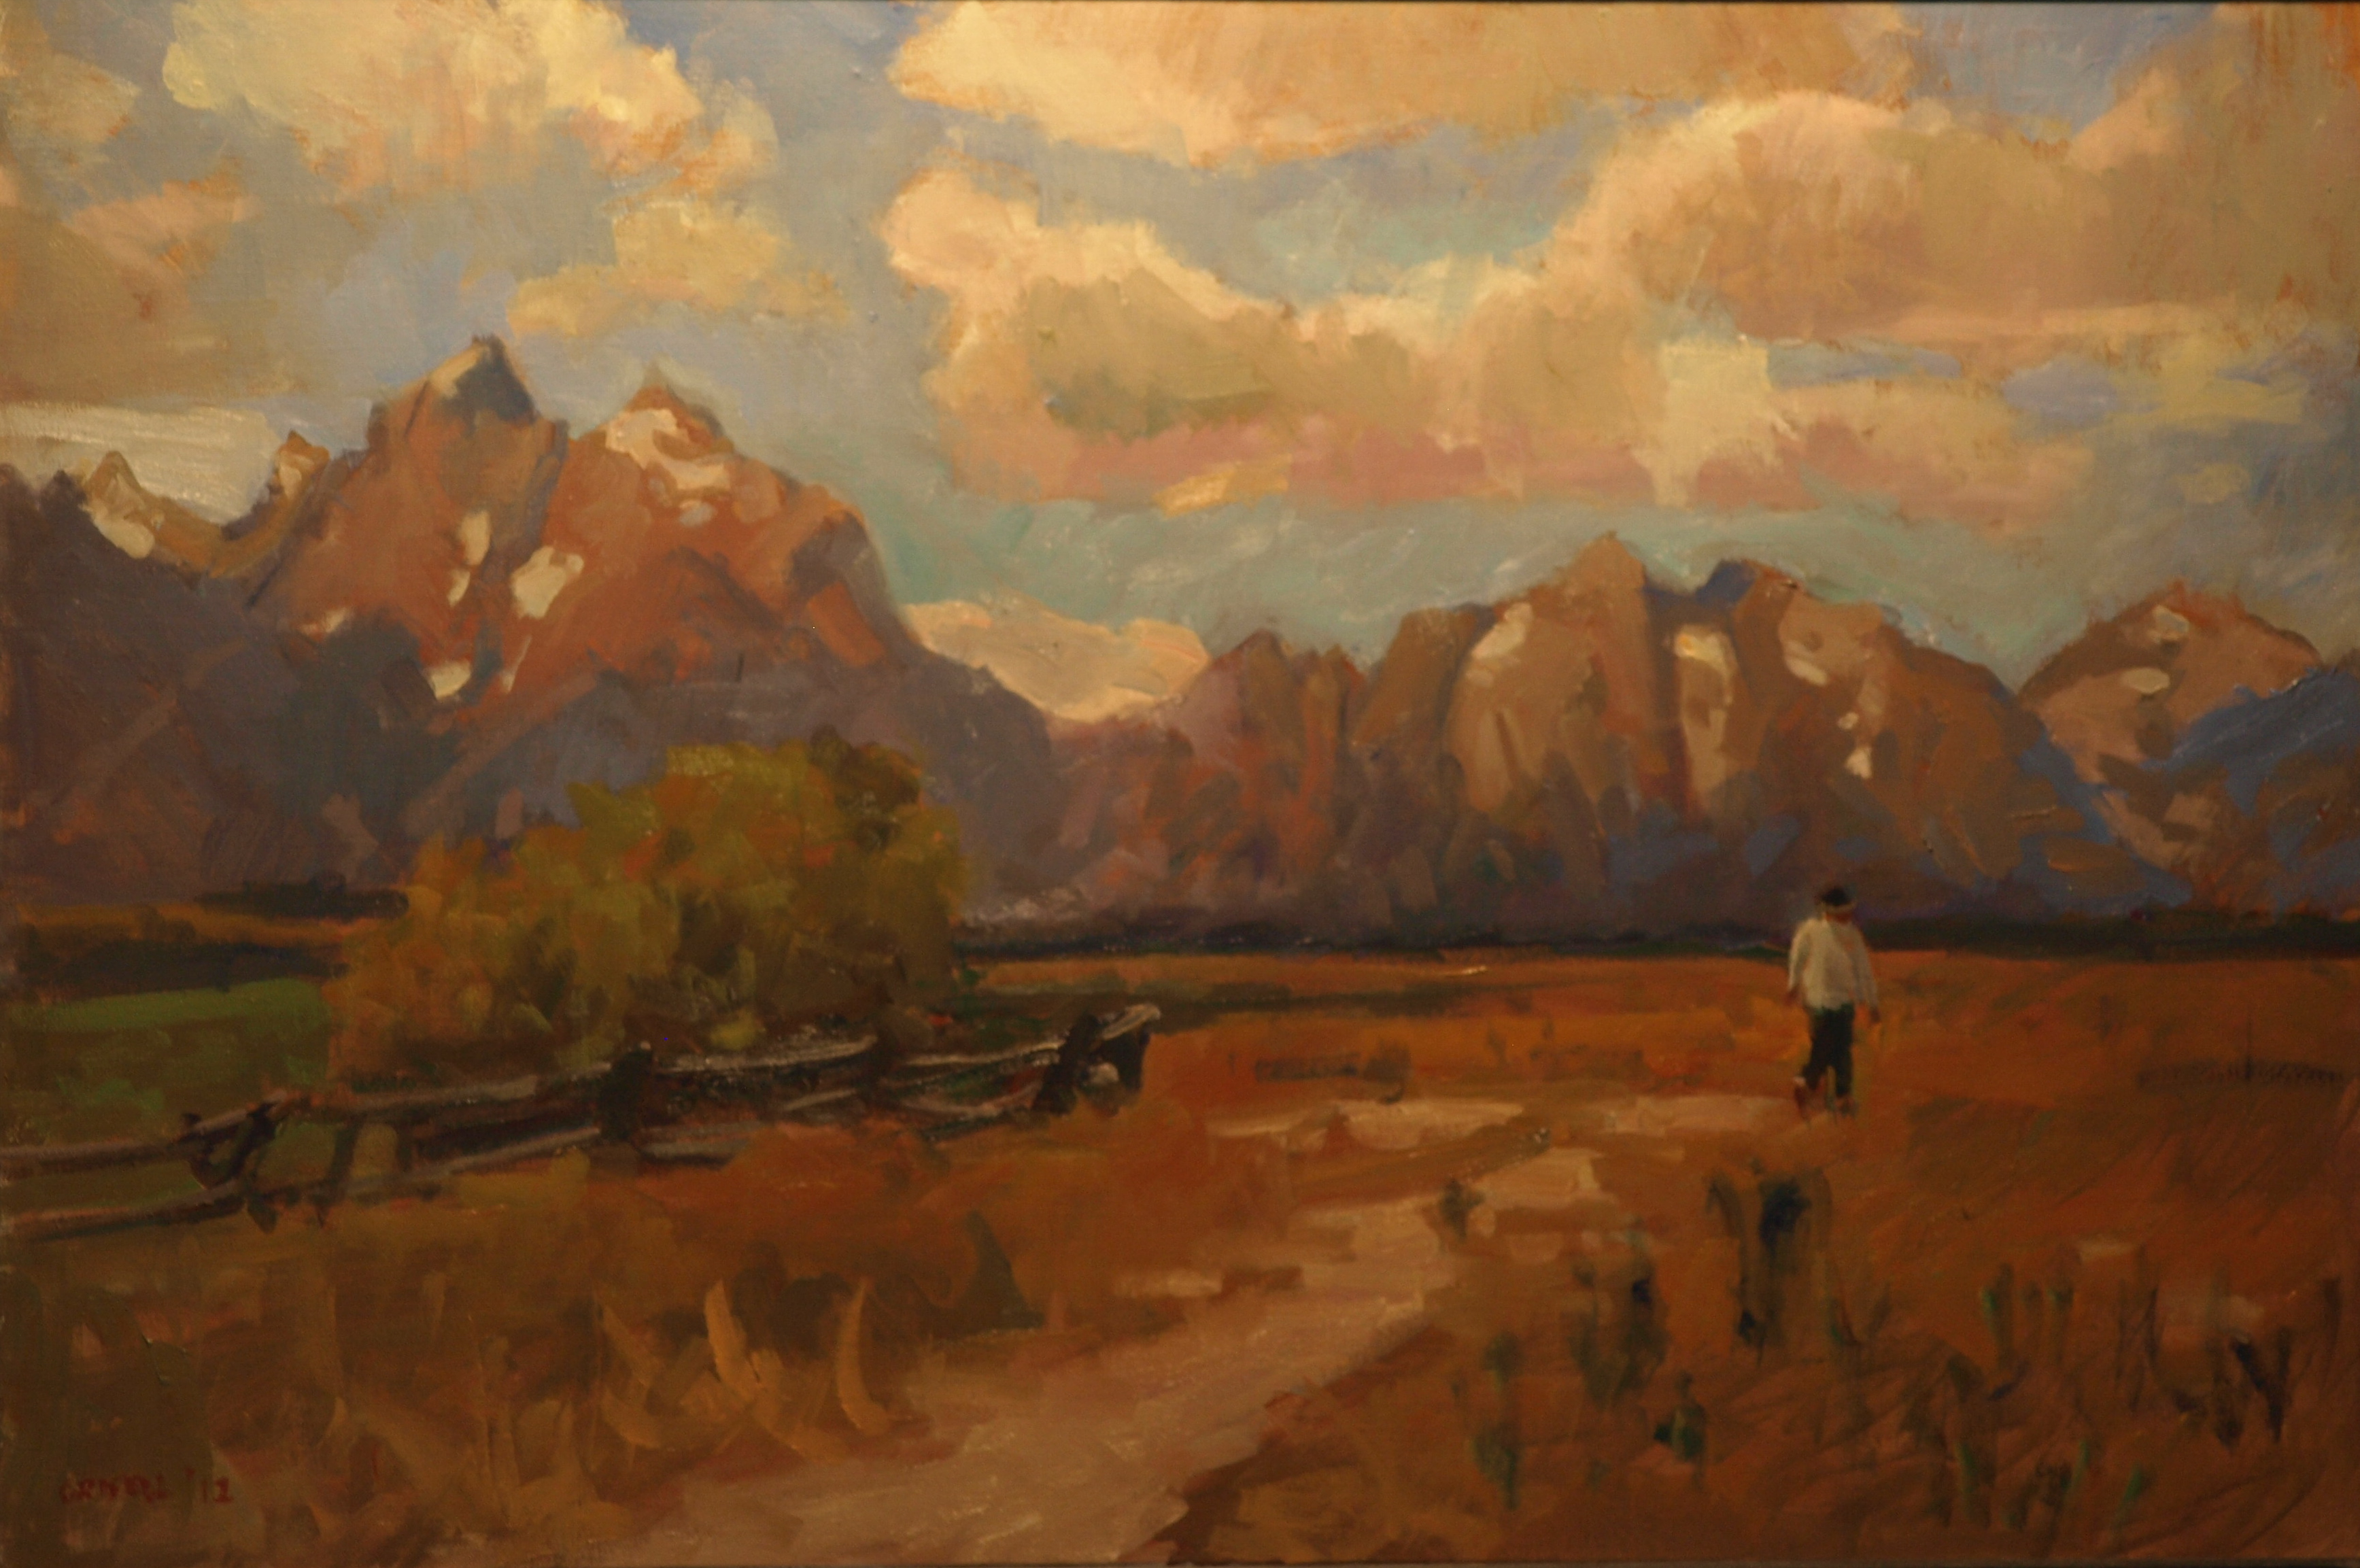 Western Path, Oil on Canvas, 24 x 36 Inches, by Susan Grisell, $1200